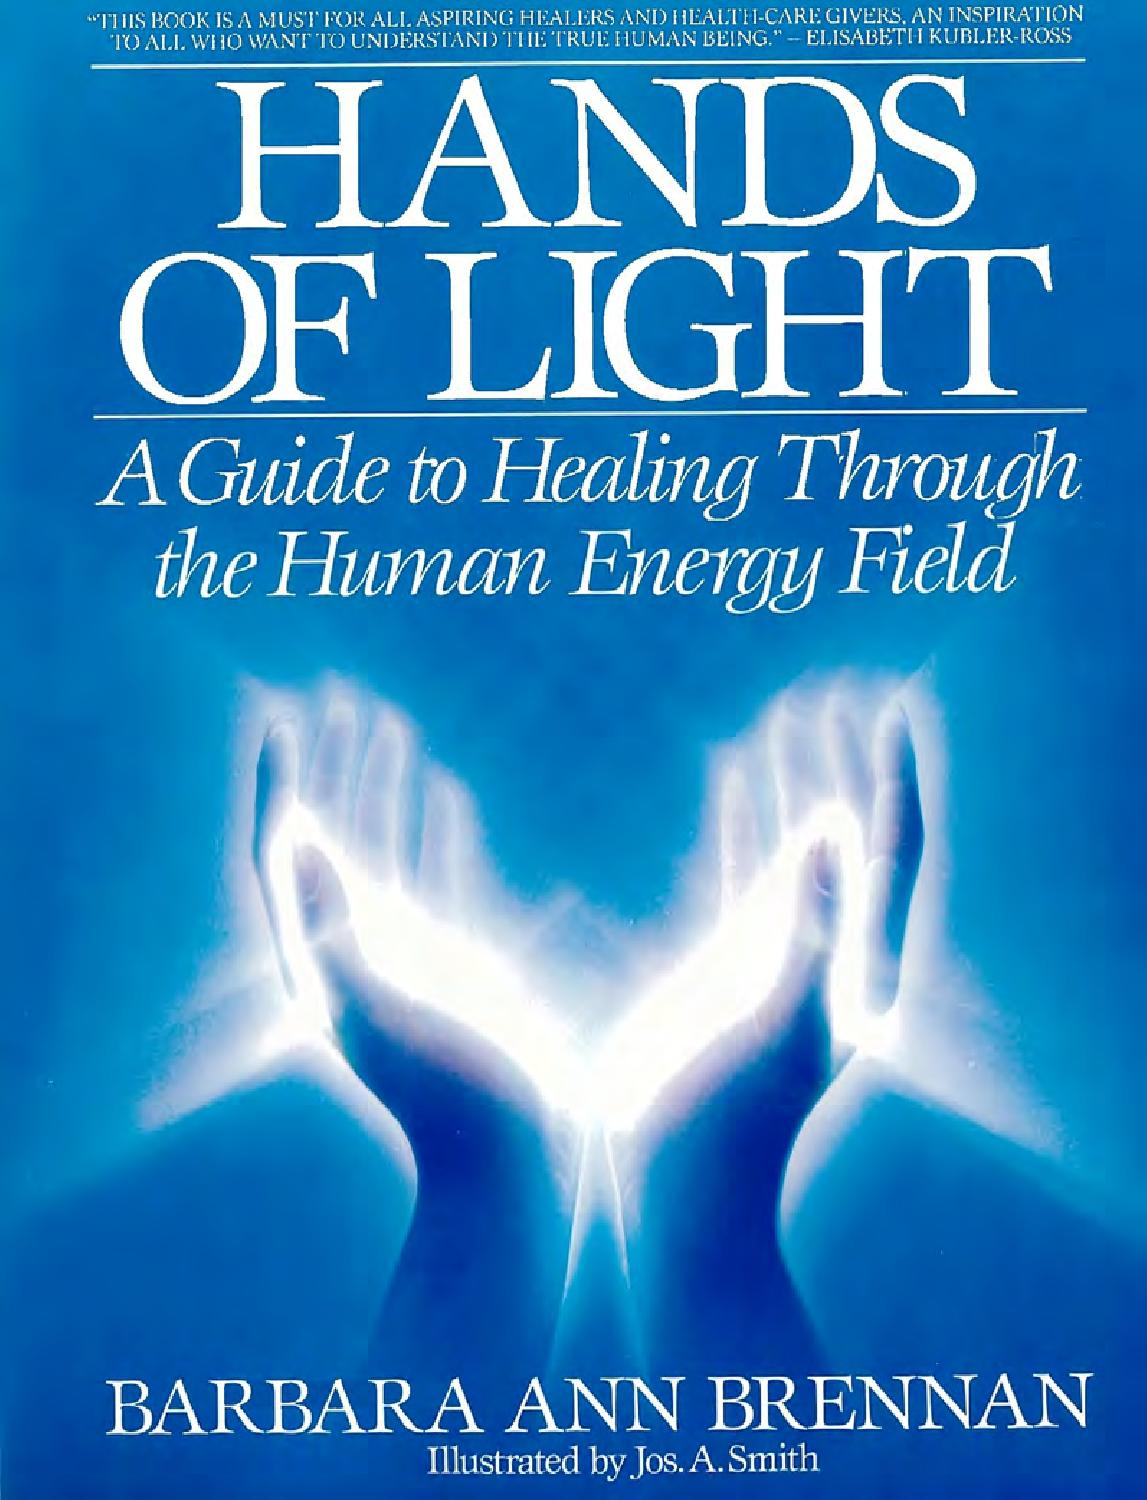 Barbara brennan hands of light a guide to healing by hristo milchev barbara brennan hands of light a guide to healing by hristo milchev issuu fandeluxe Choice Image